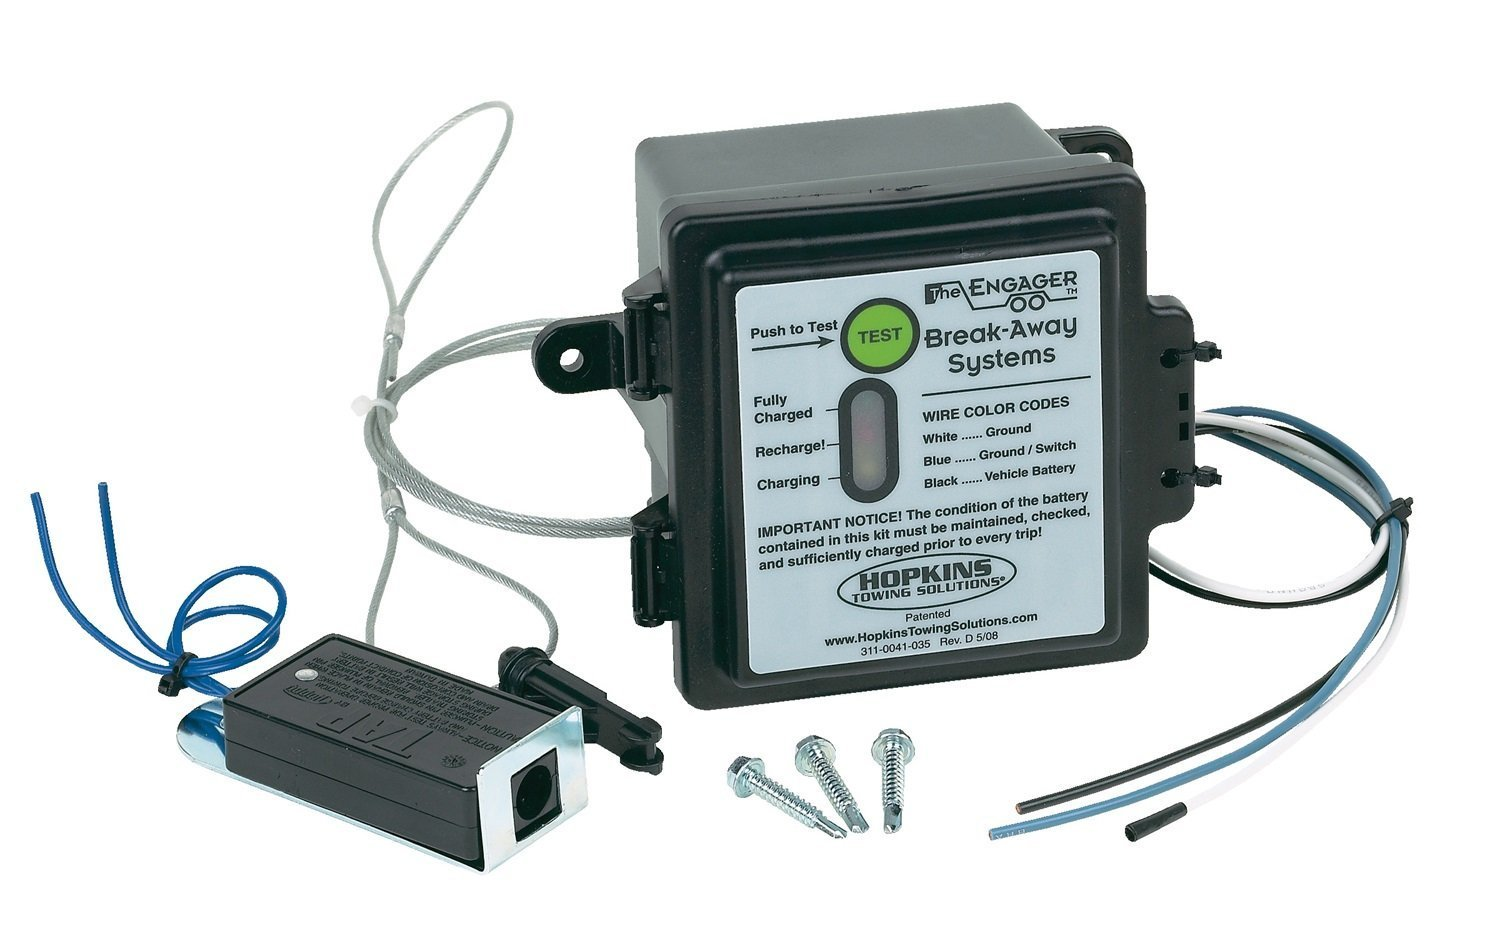 Hopkins The Engager 20099 Engager Break Away Systerm W/Battery Meter ...